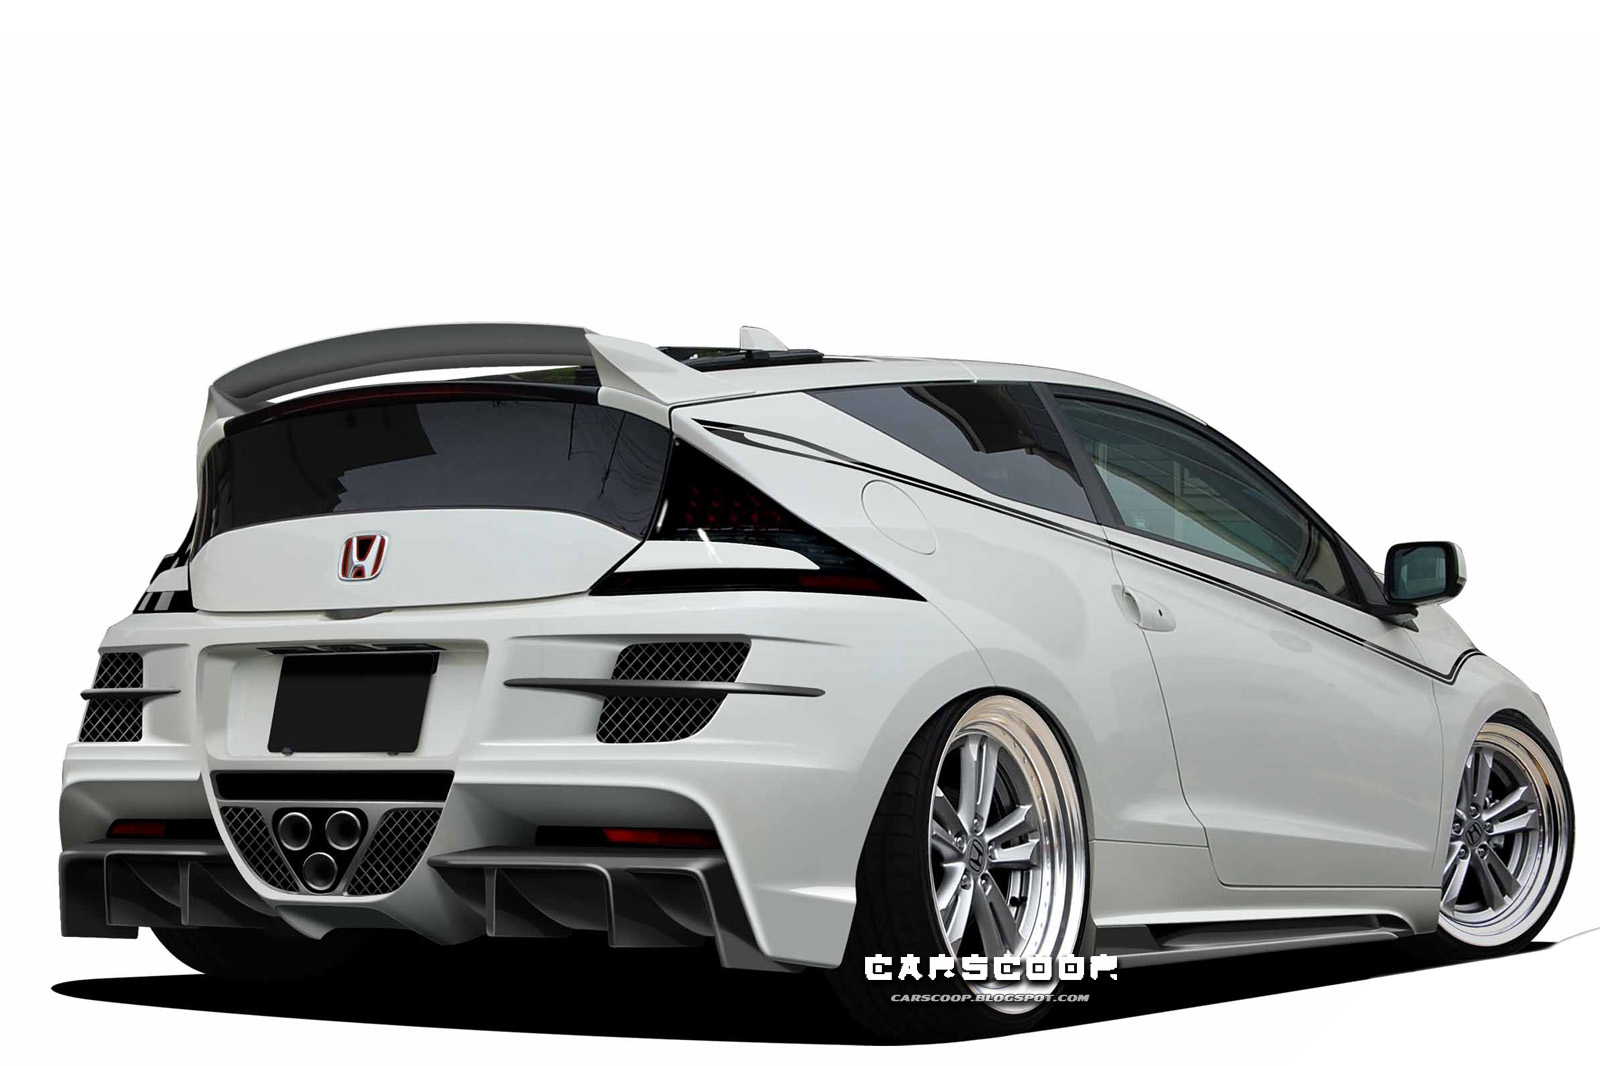 white honda crz hd wallpaper. Black Bedroom Furniture Sets. Home Design Ideas